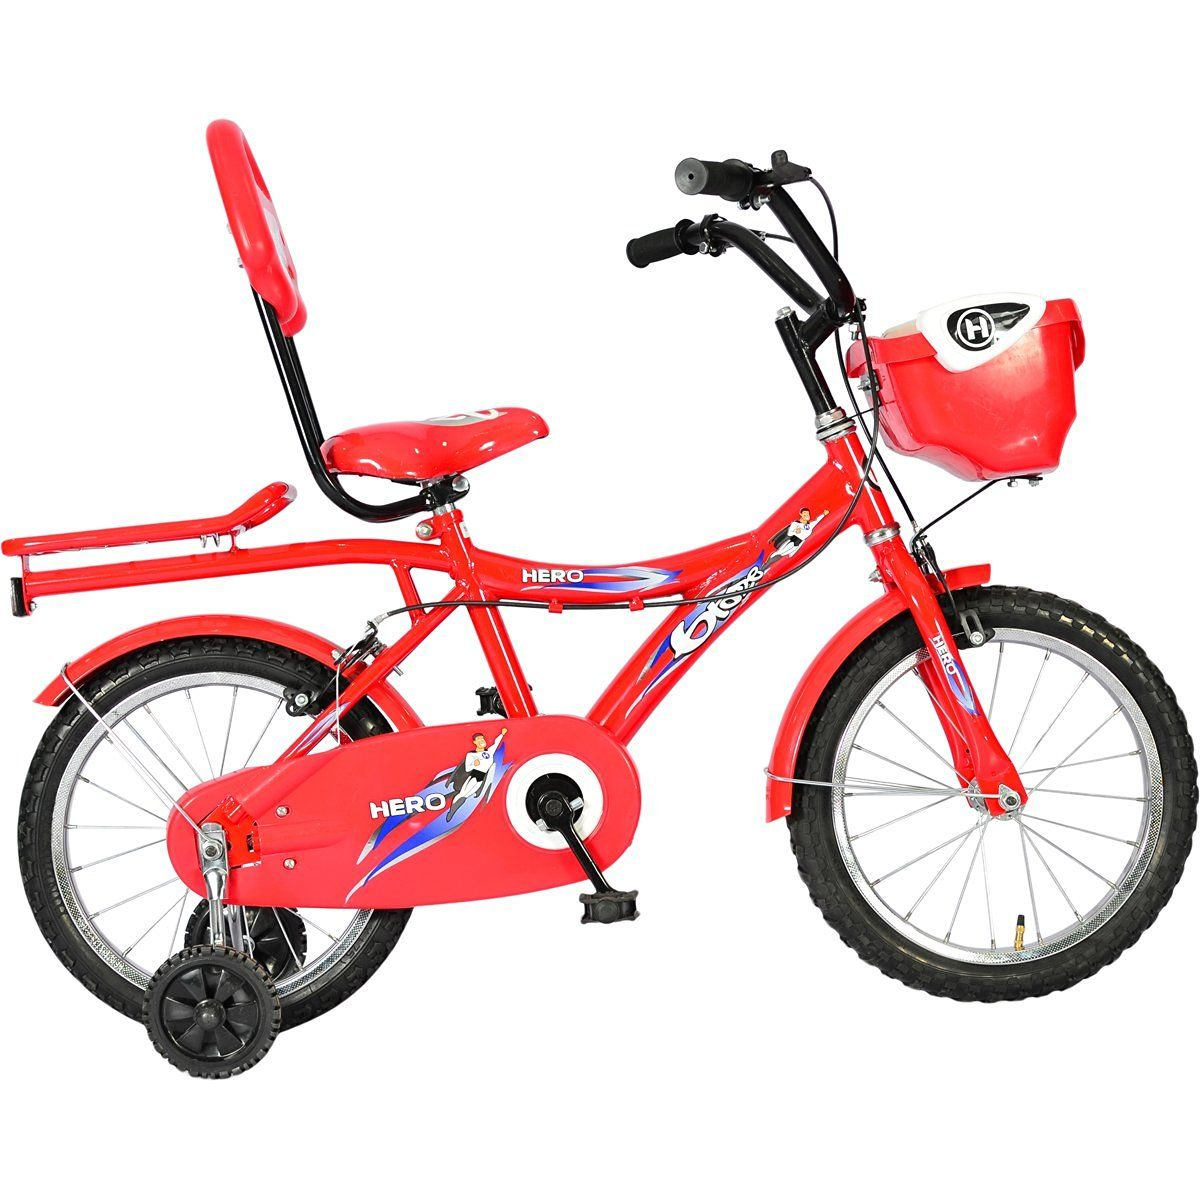 Toys car rupees   best Bicycle For Children  Years images on Pinterest  College